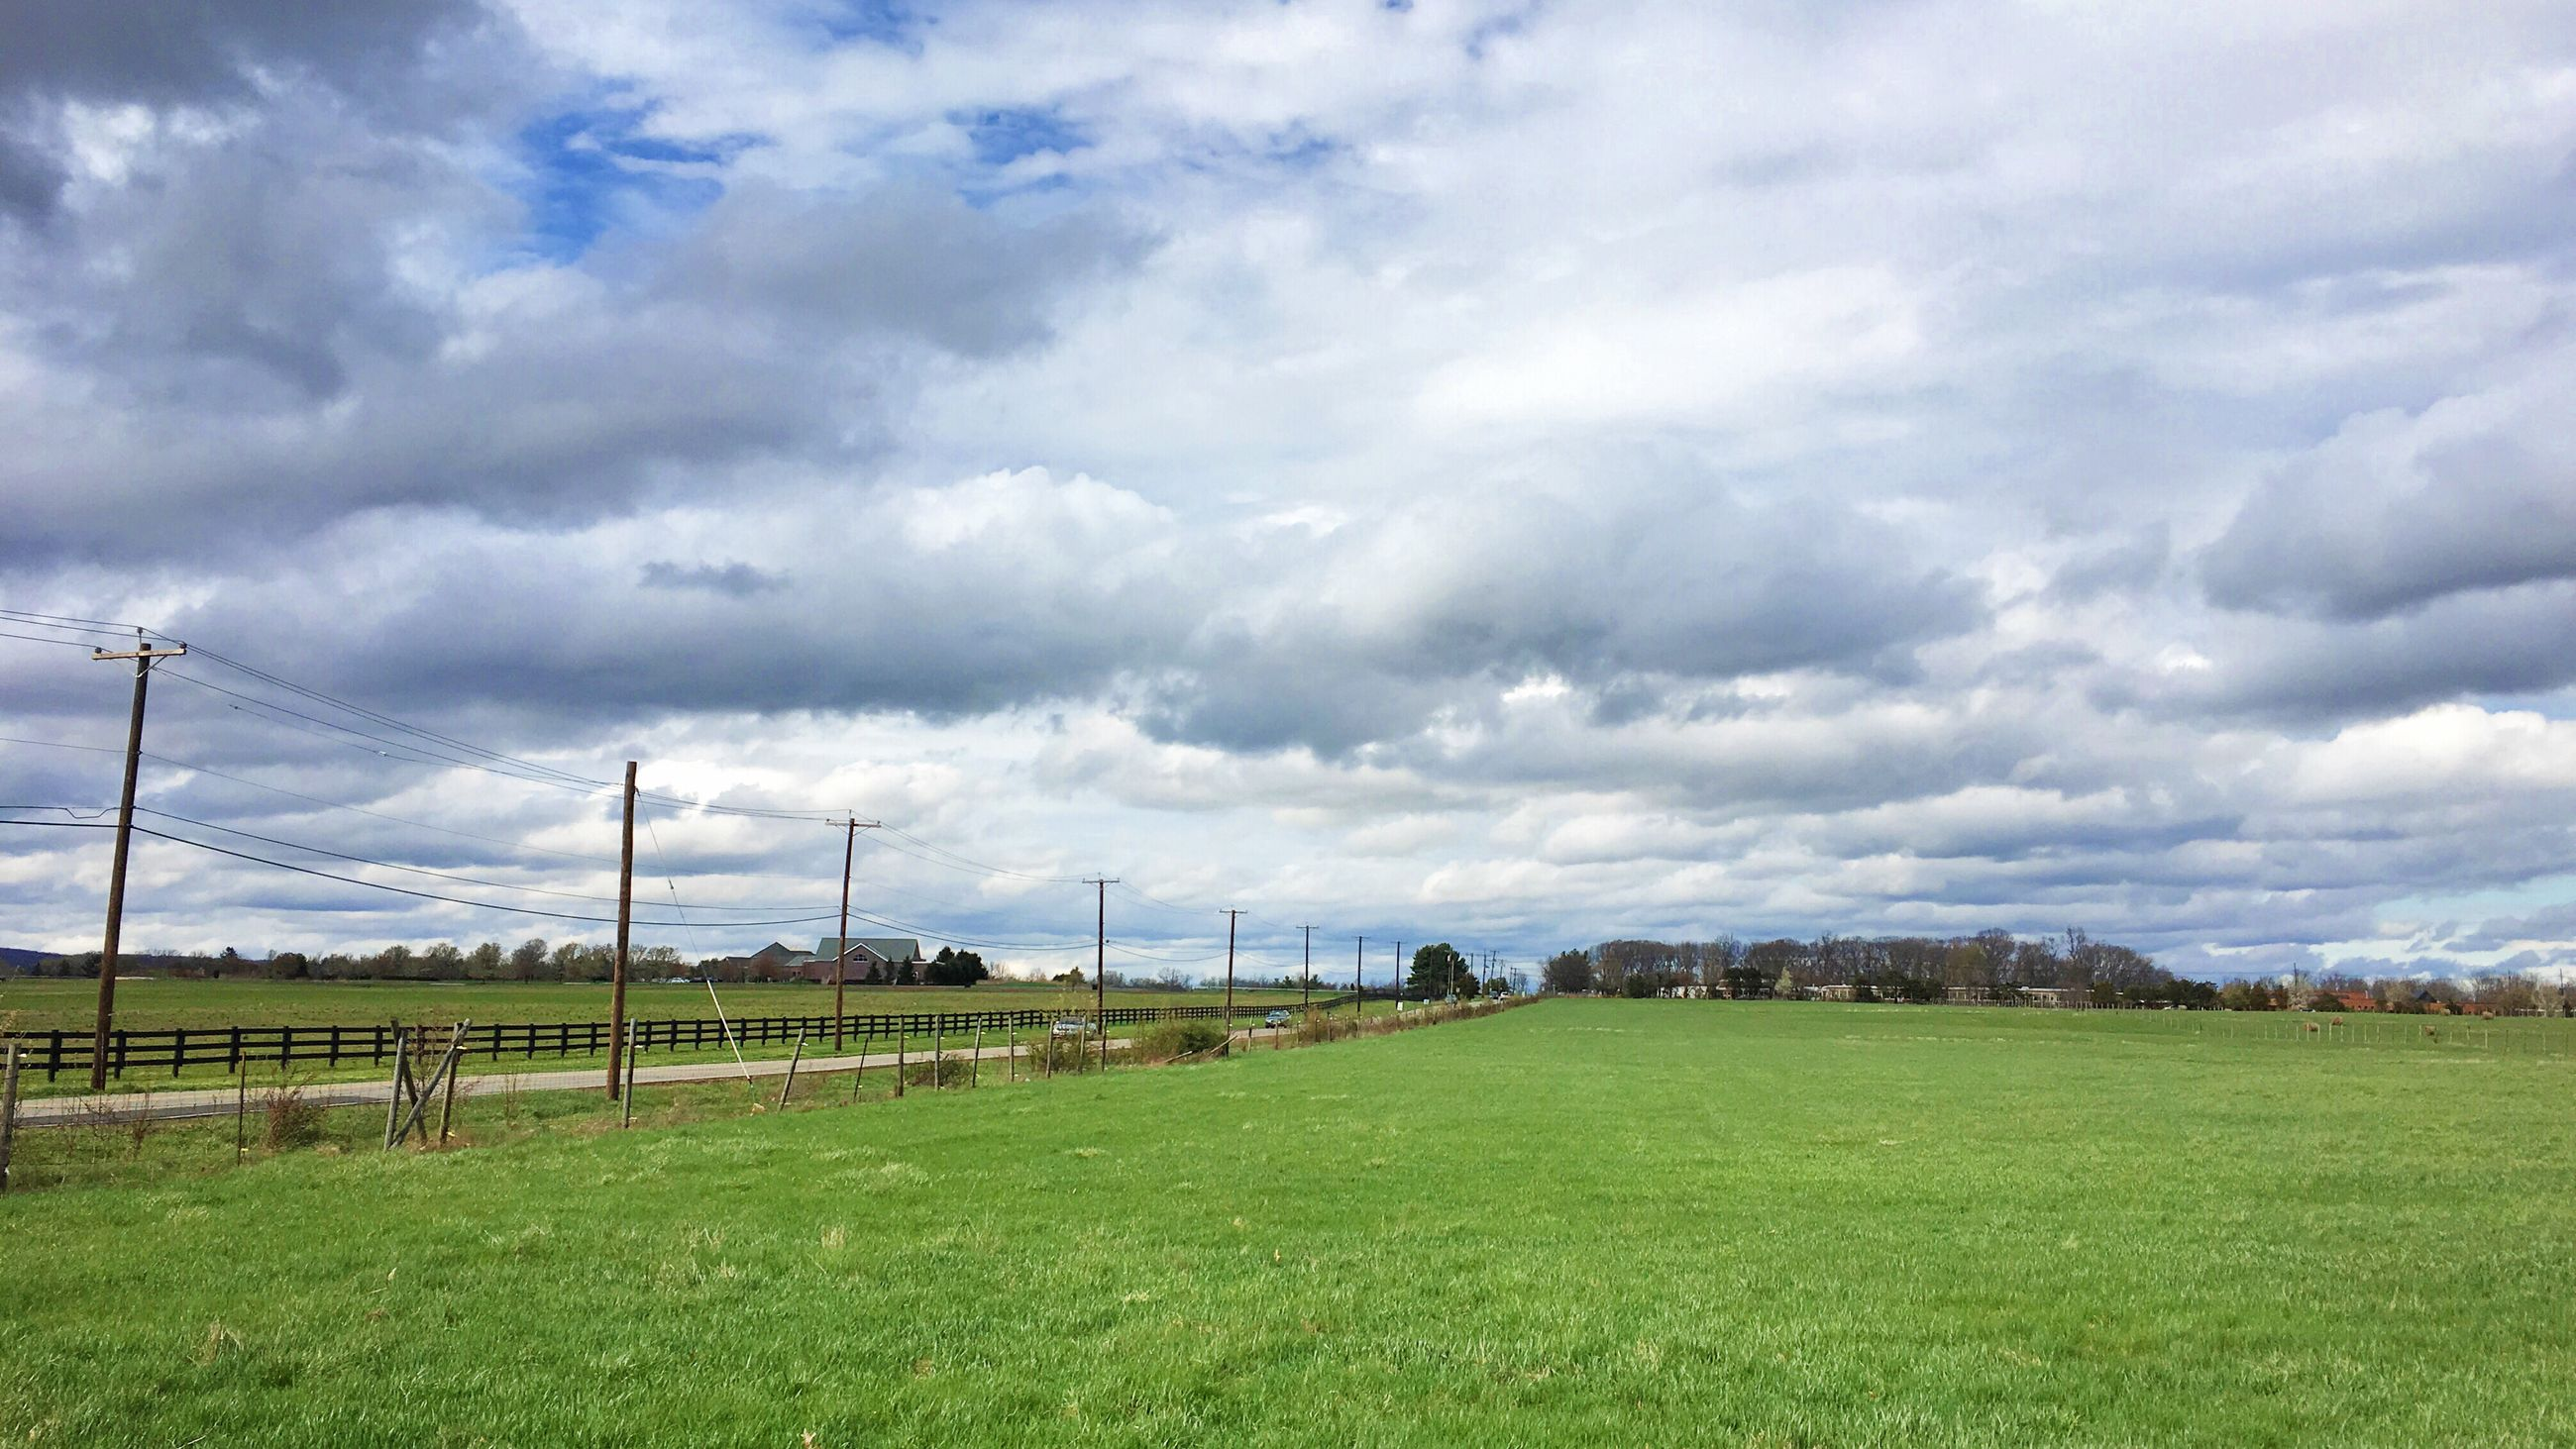 field, grass, sky, landscape, cloud - sky, cloudy, grassy, rural scene, green color, agriculture, tranquil scene, tranquility, nature, farm, scenics, beauty in nature, cloud, growth, overcast, fence